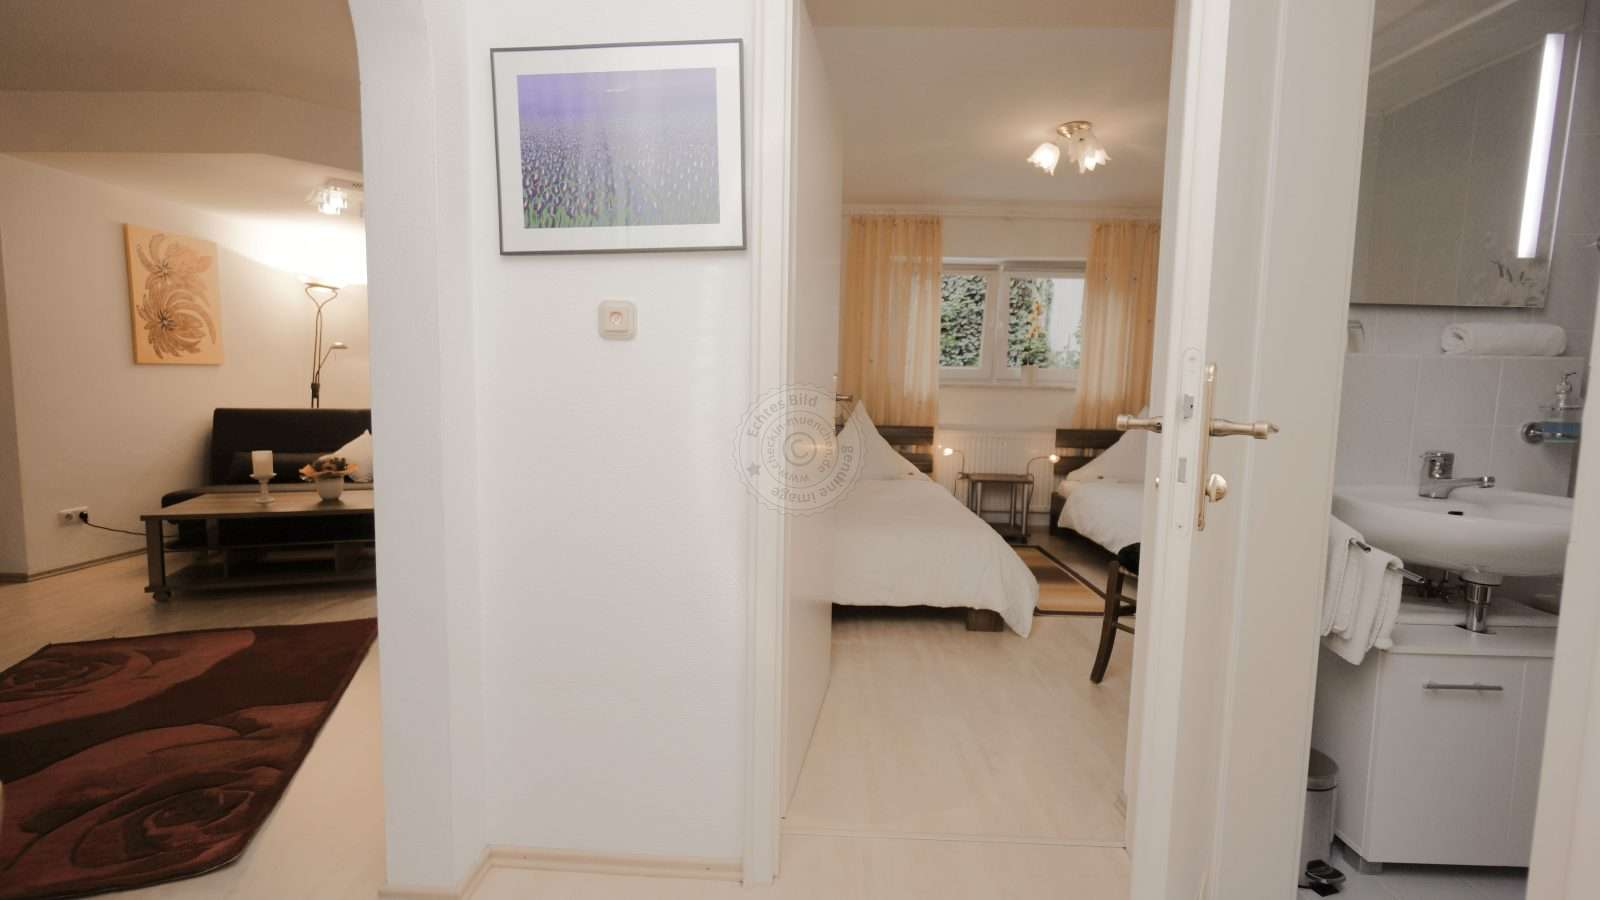 Small hallway in the apartment leads to the living room, bedroom and bathroom